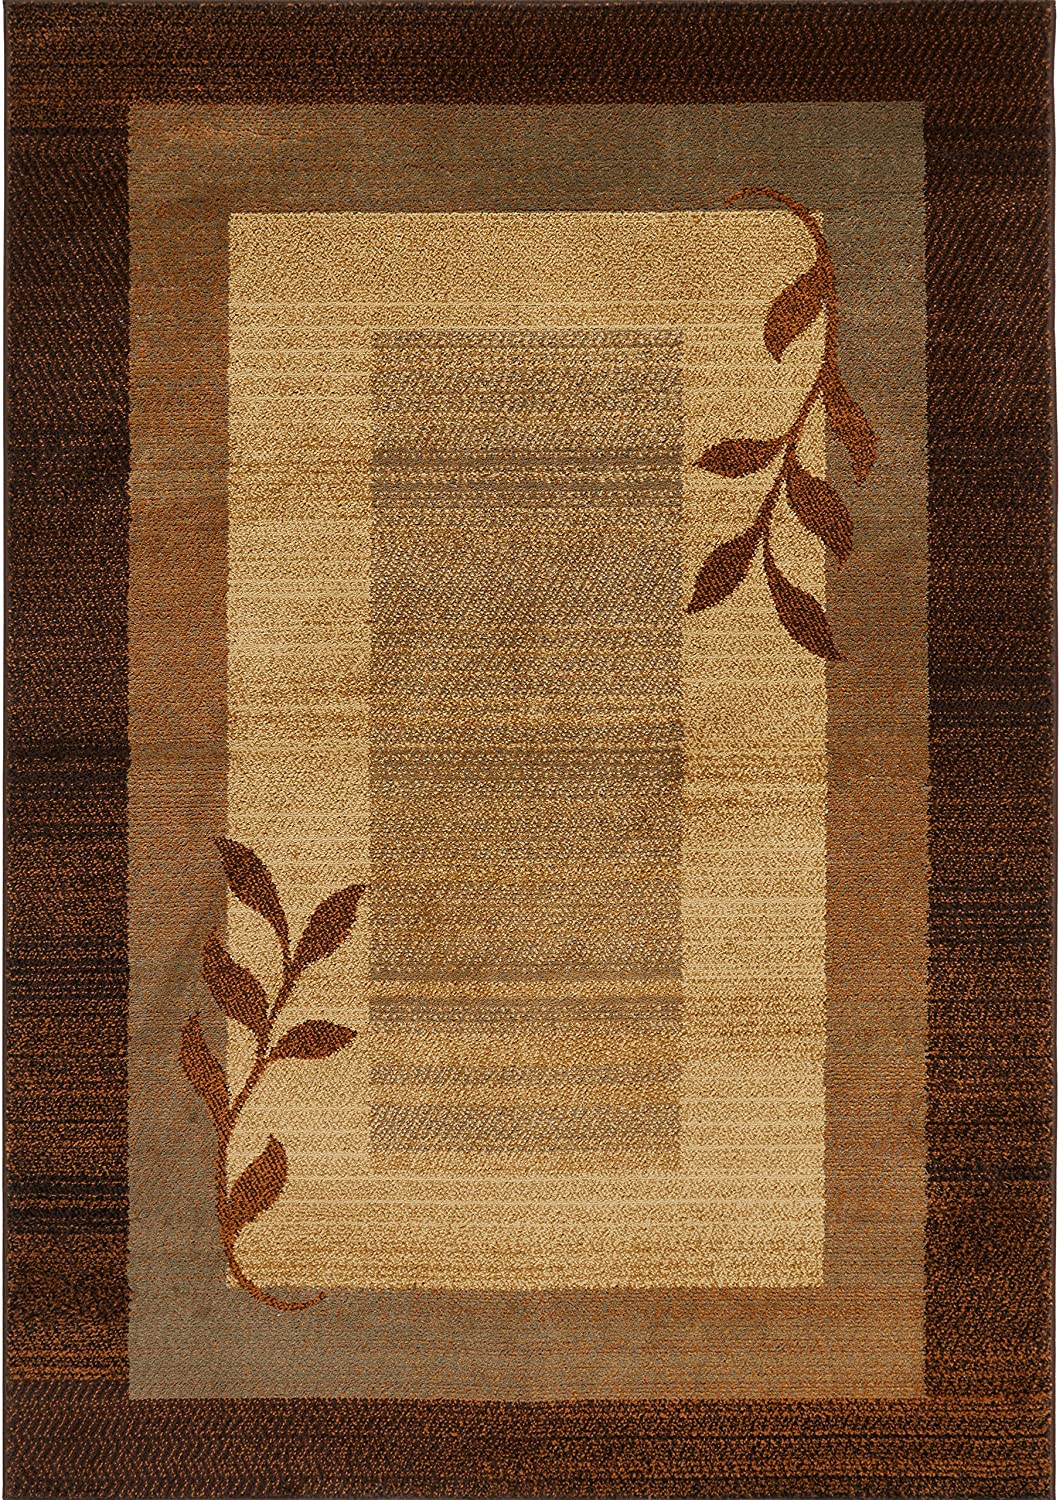 Brown And Blue Patterned Bathroom Rugs: BROWN BLUE STRIPED BORDERED CASUAL AREA RUG MODERN